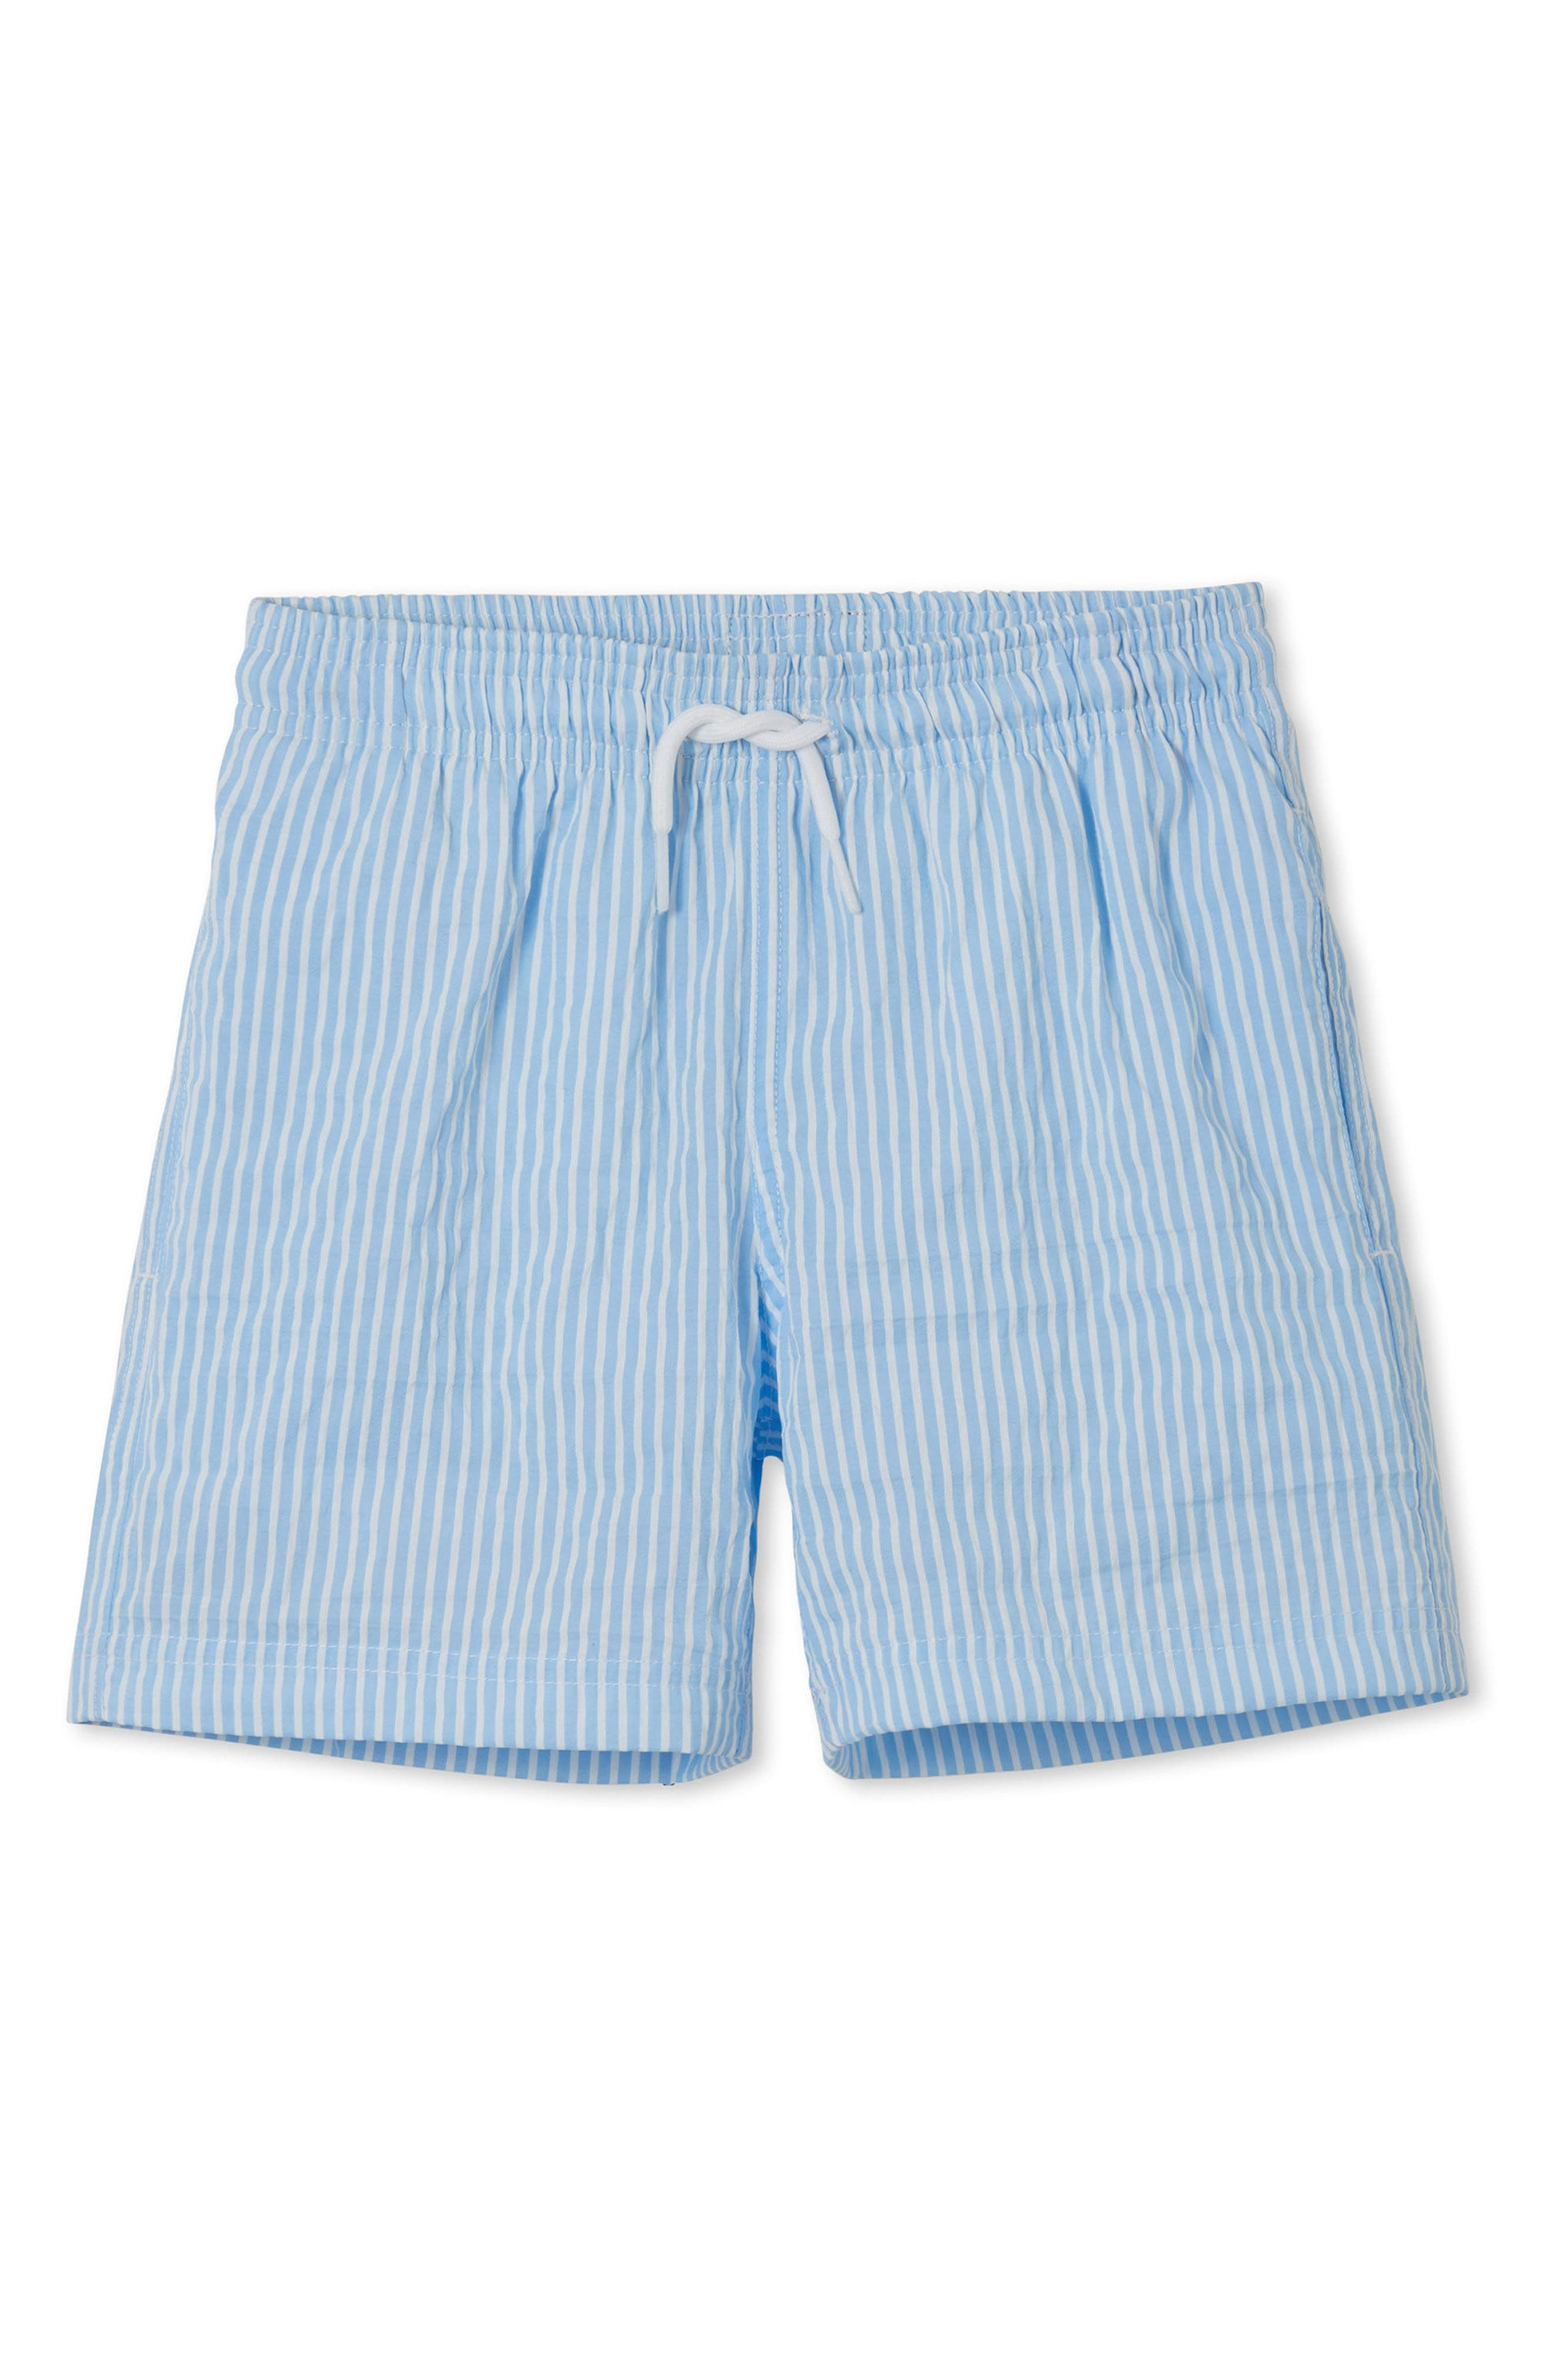 Blue Stripe Swim Trunks,                         Main,                         color, Blue